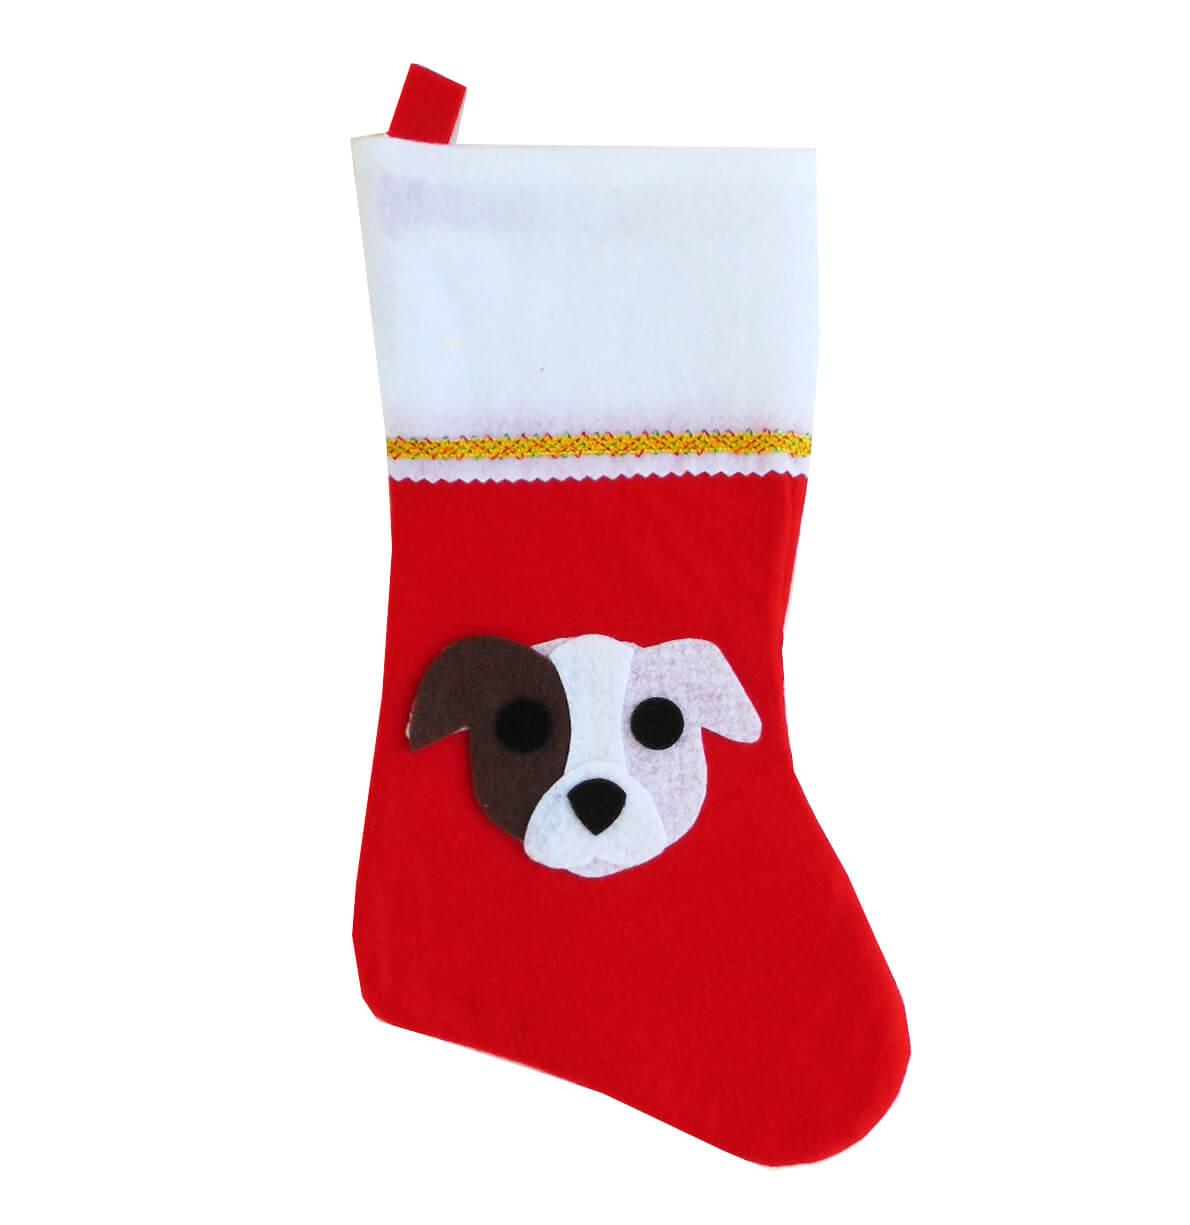 Pit Bull Christmas Stocking - Brown Eye Patch - Natural Ears